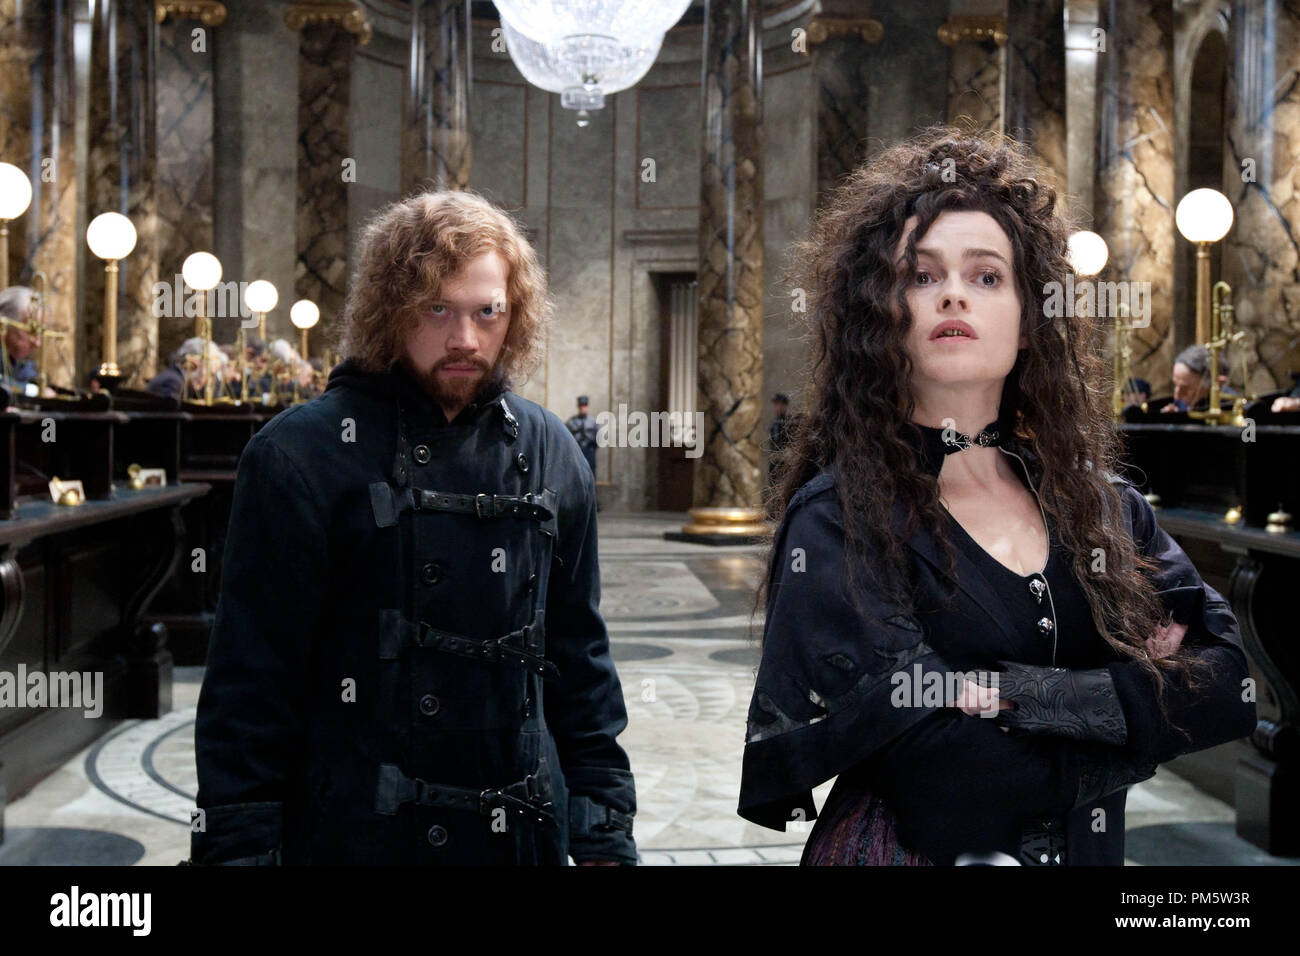 """(L-r) RUPERT GRINT as Ron Weasley and HELENA BONHAM CARTER as Bellatrix Lestrange in Warner Bros. Pictures' fantasy adventure """"HARRY POTTER AND THE DEATHLY HALLOWS – PART 2,"""" a Warner Bros. Pictures release. - Stock Image"""